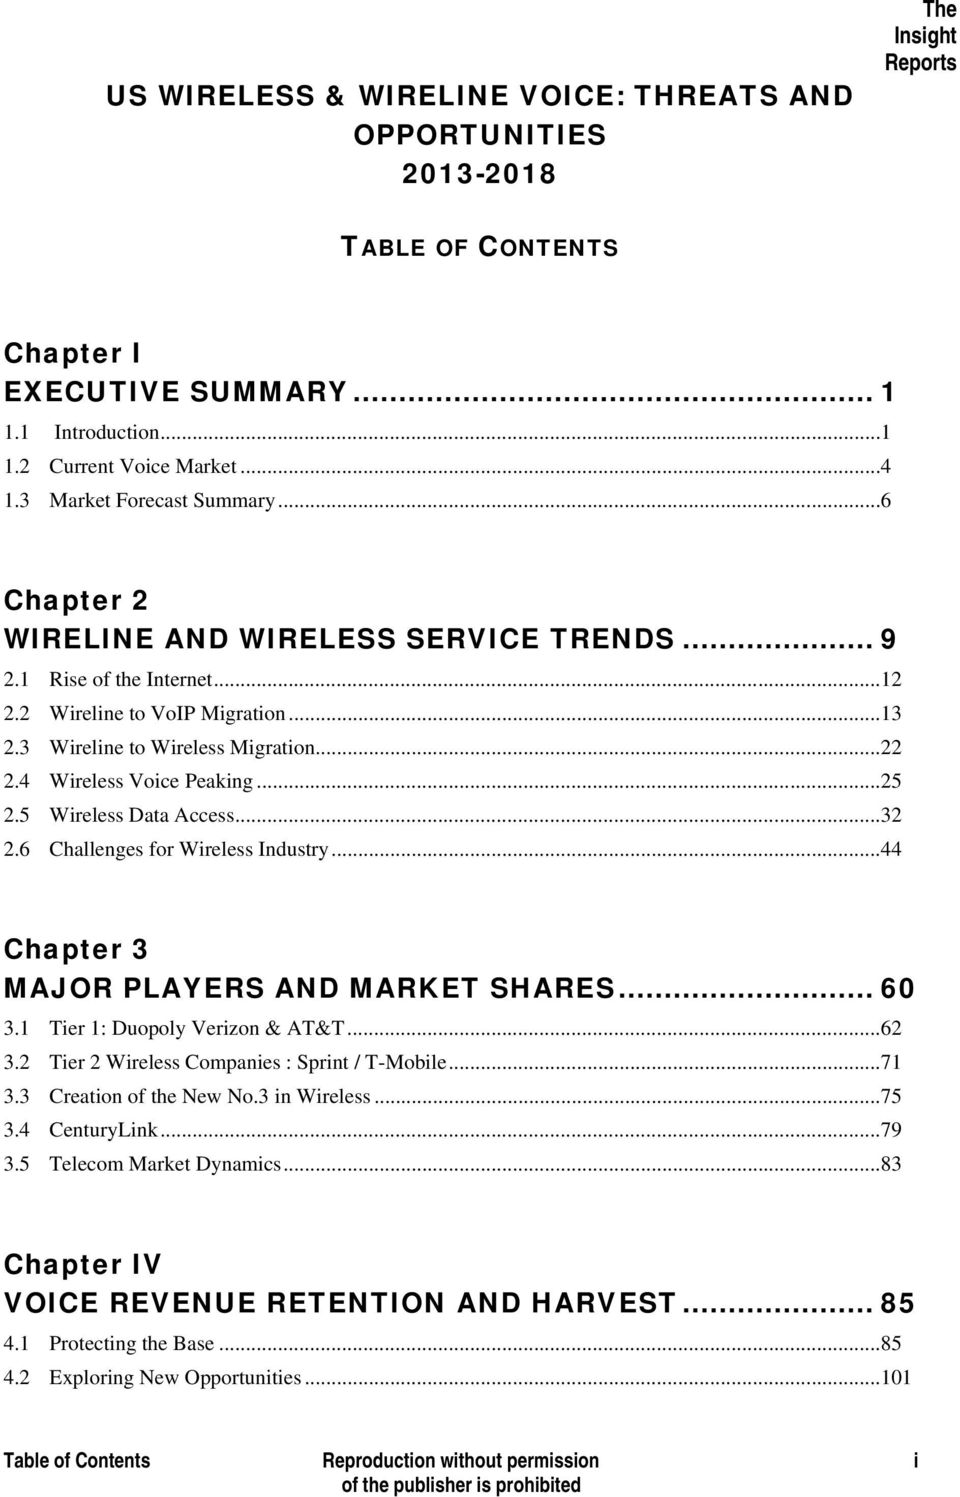 5 Wireless Data Access...32 2.6 Challenges for Wireless Industry...44 Chapter 3 MAJOR PLAYERS AND MARKET SHARES... 60 3.1 Tier 1: Duopoly Verizon & AT&T...62 3.